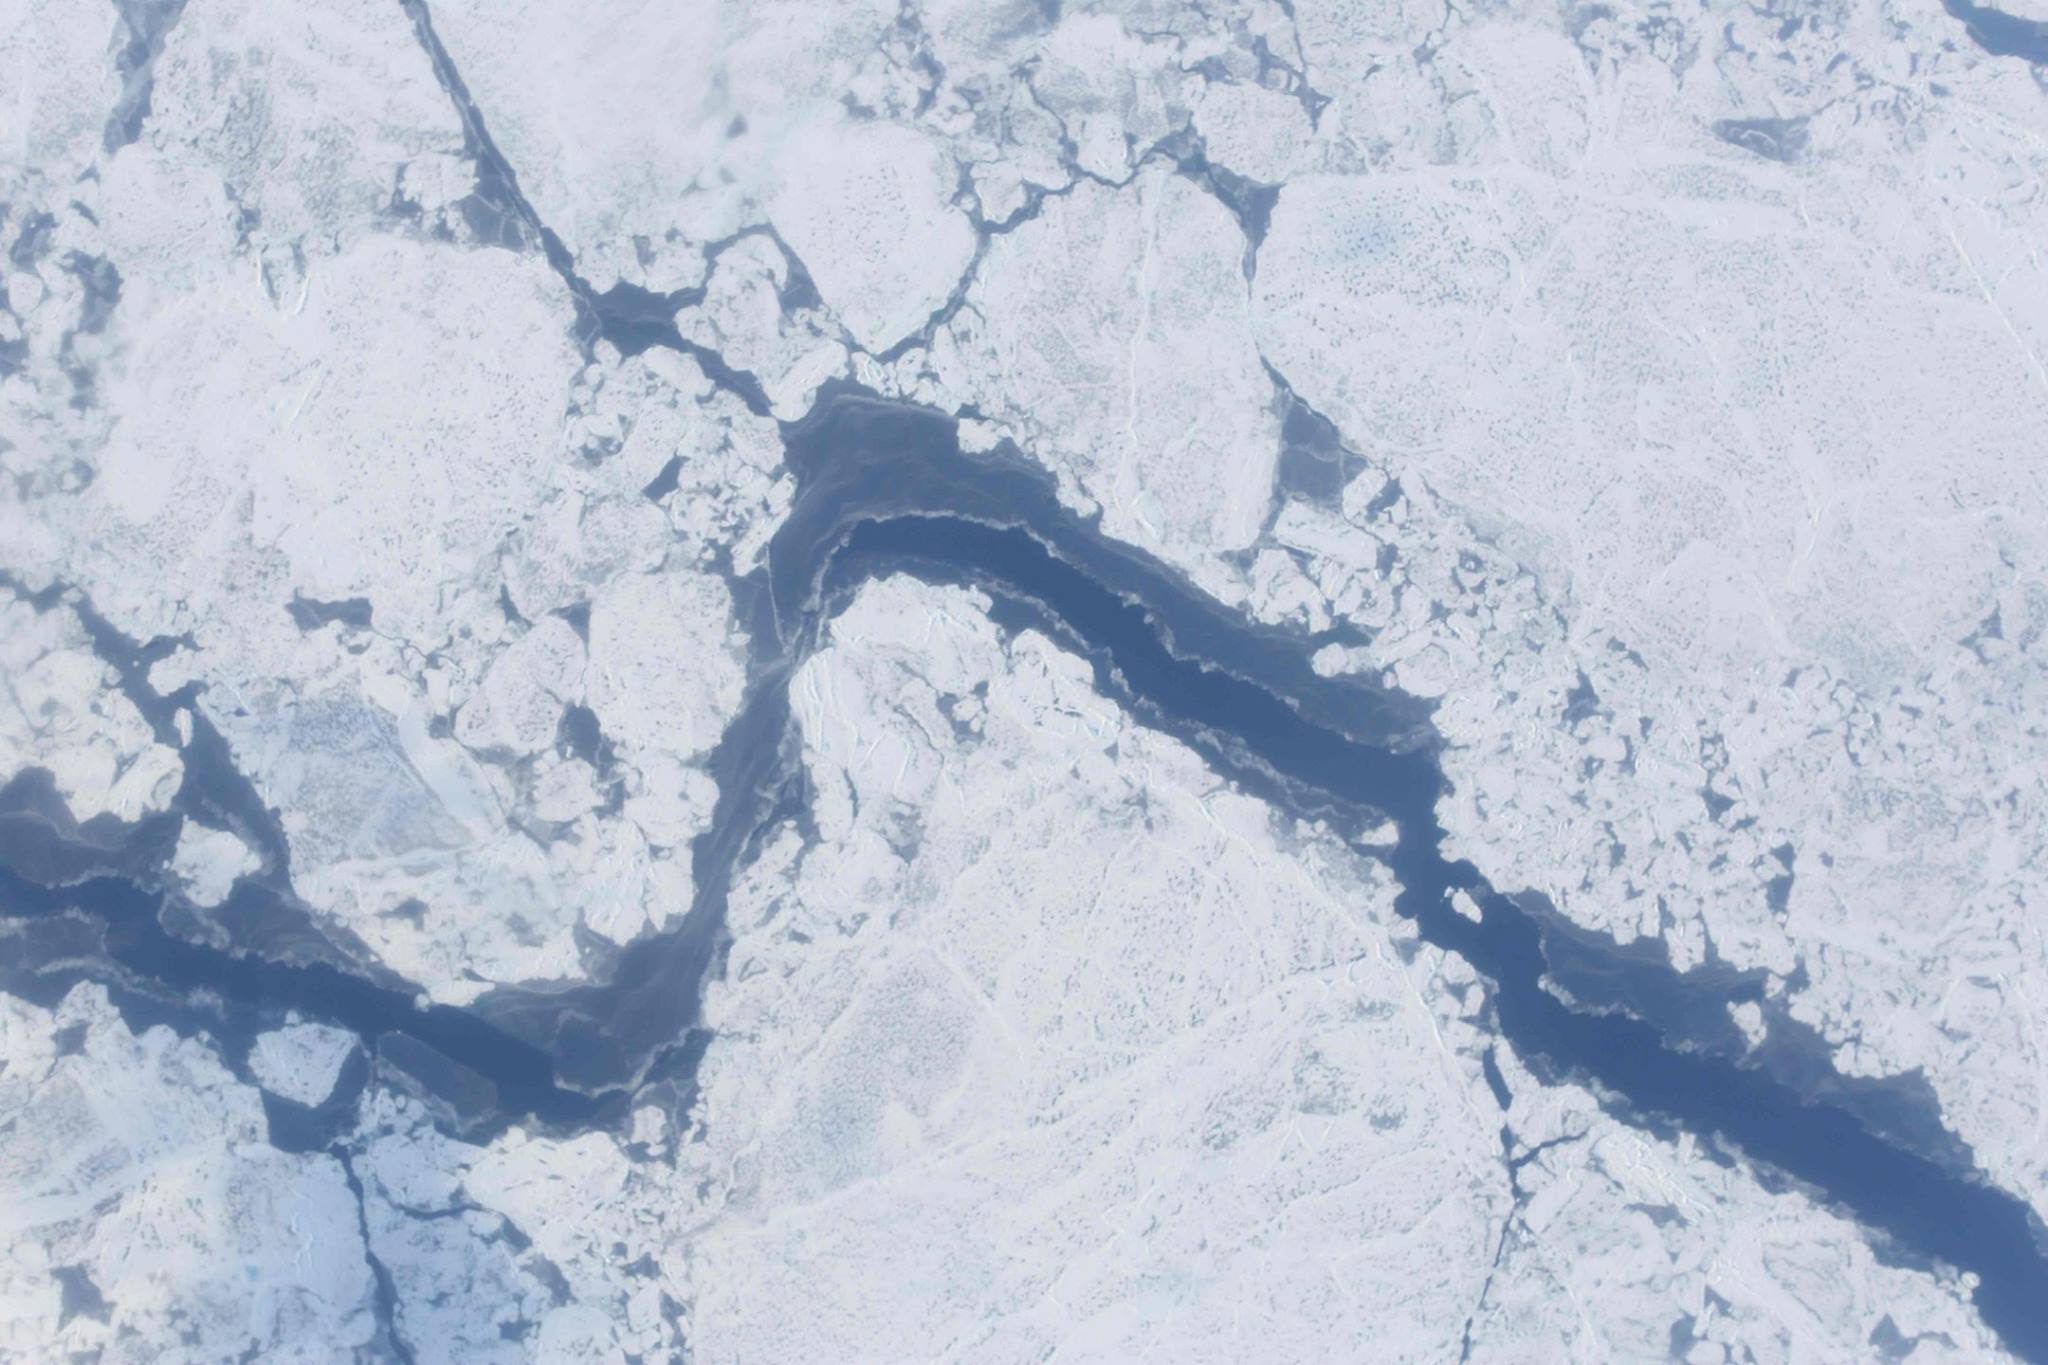 Digital camera shot of large sea ice lead